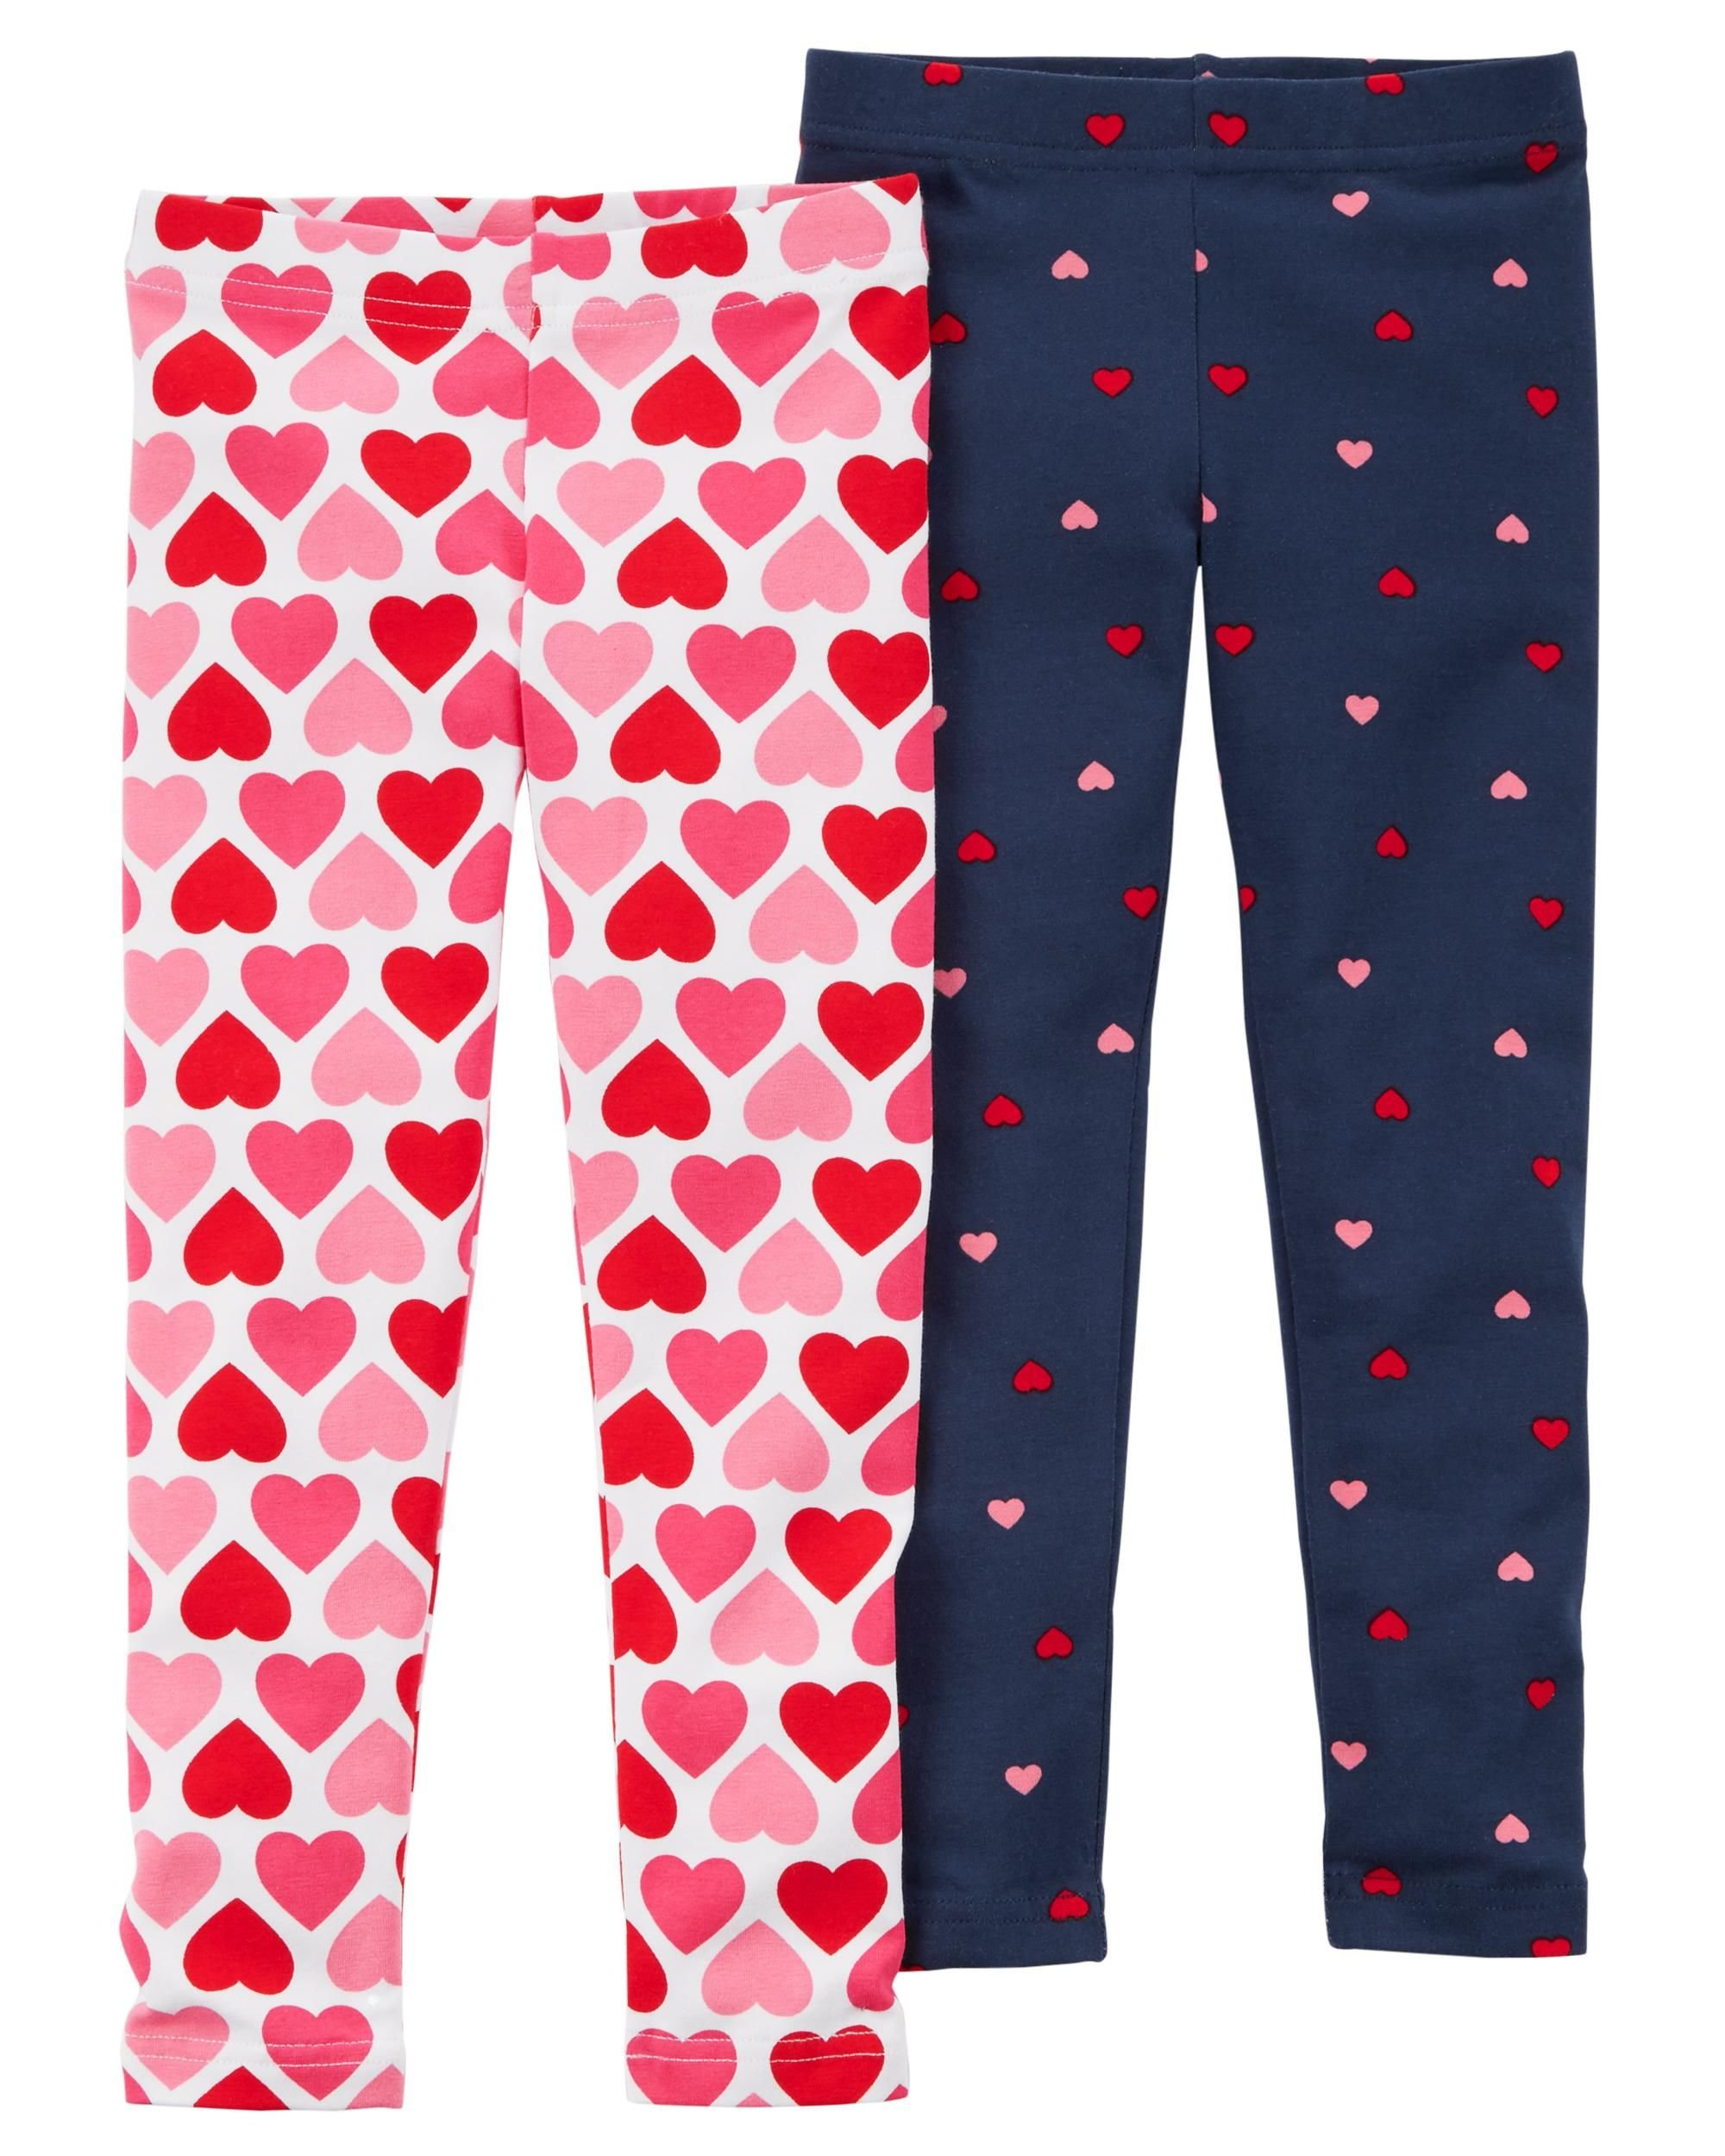 Carters Little Girls Heart Design Leggings - 2 Pairs (5T)